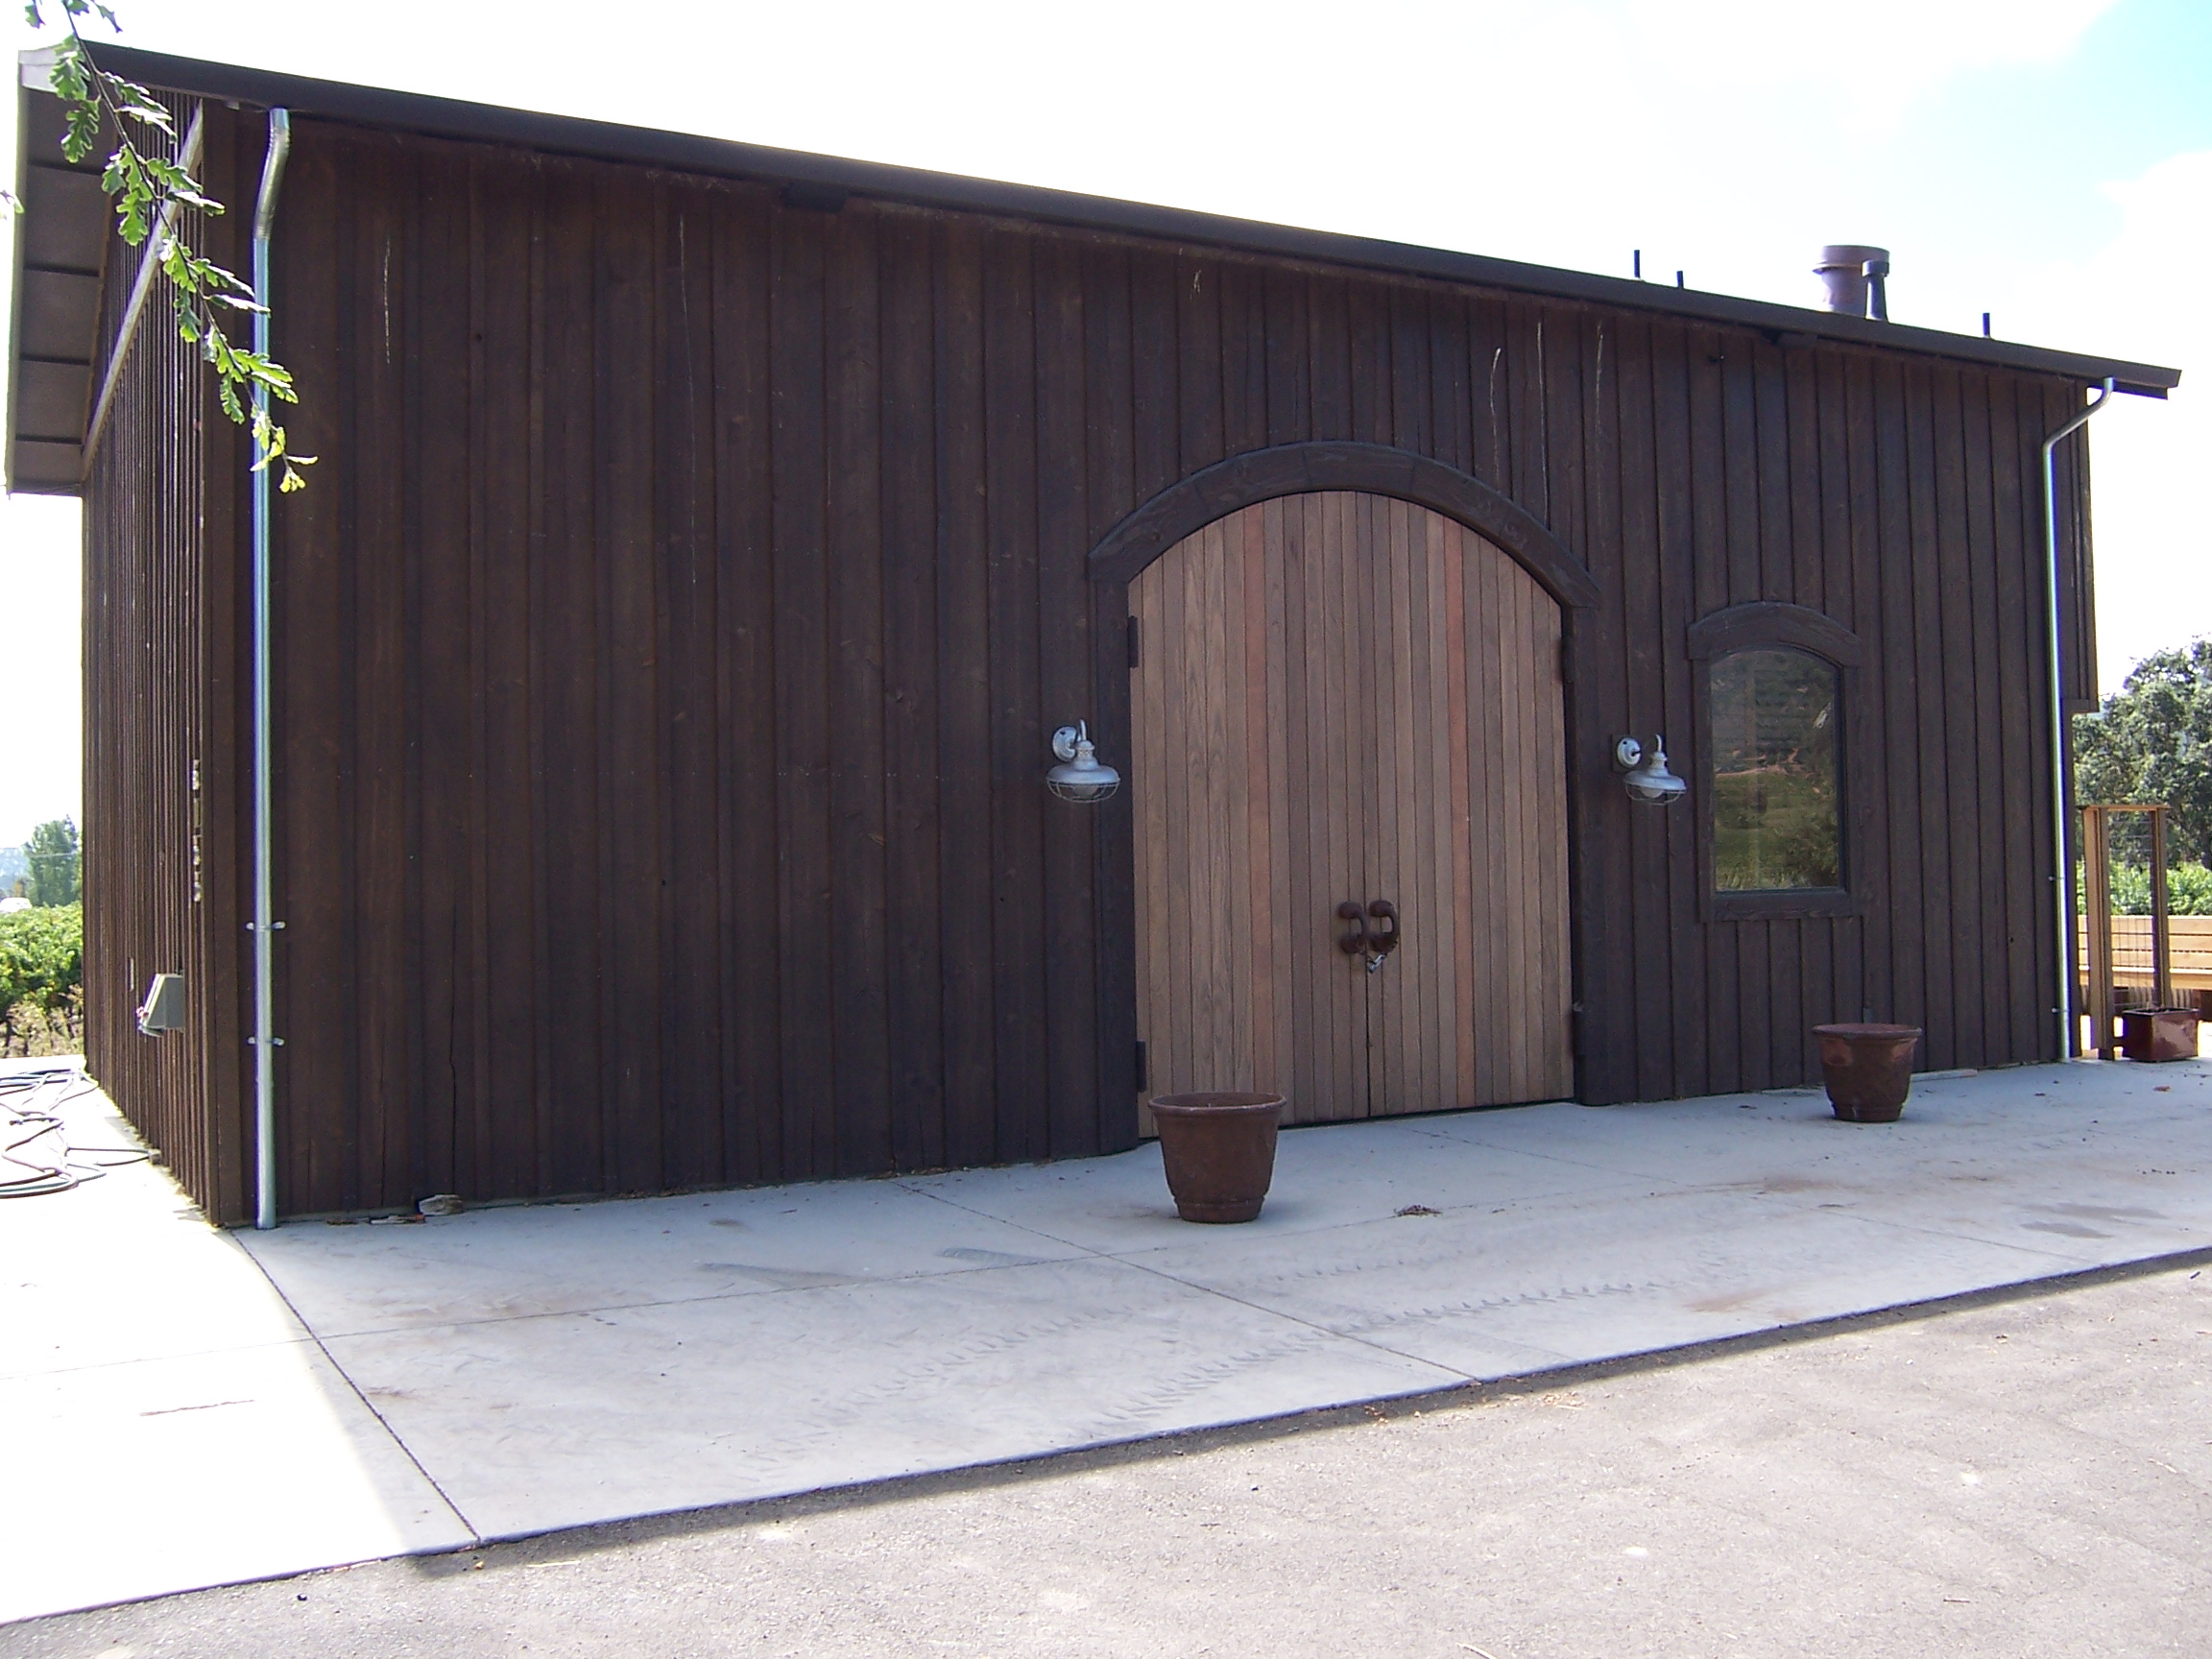 Napa Winery 2.jpg